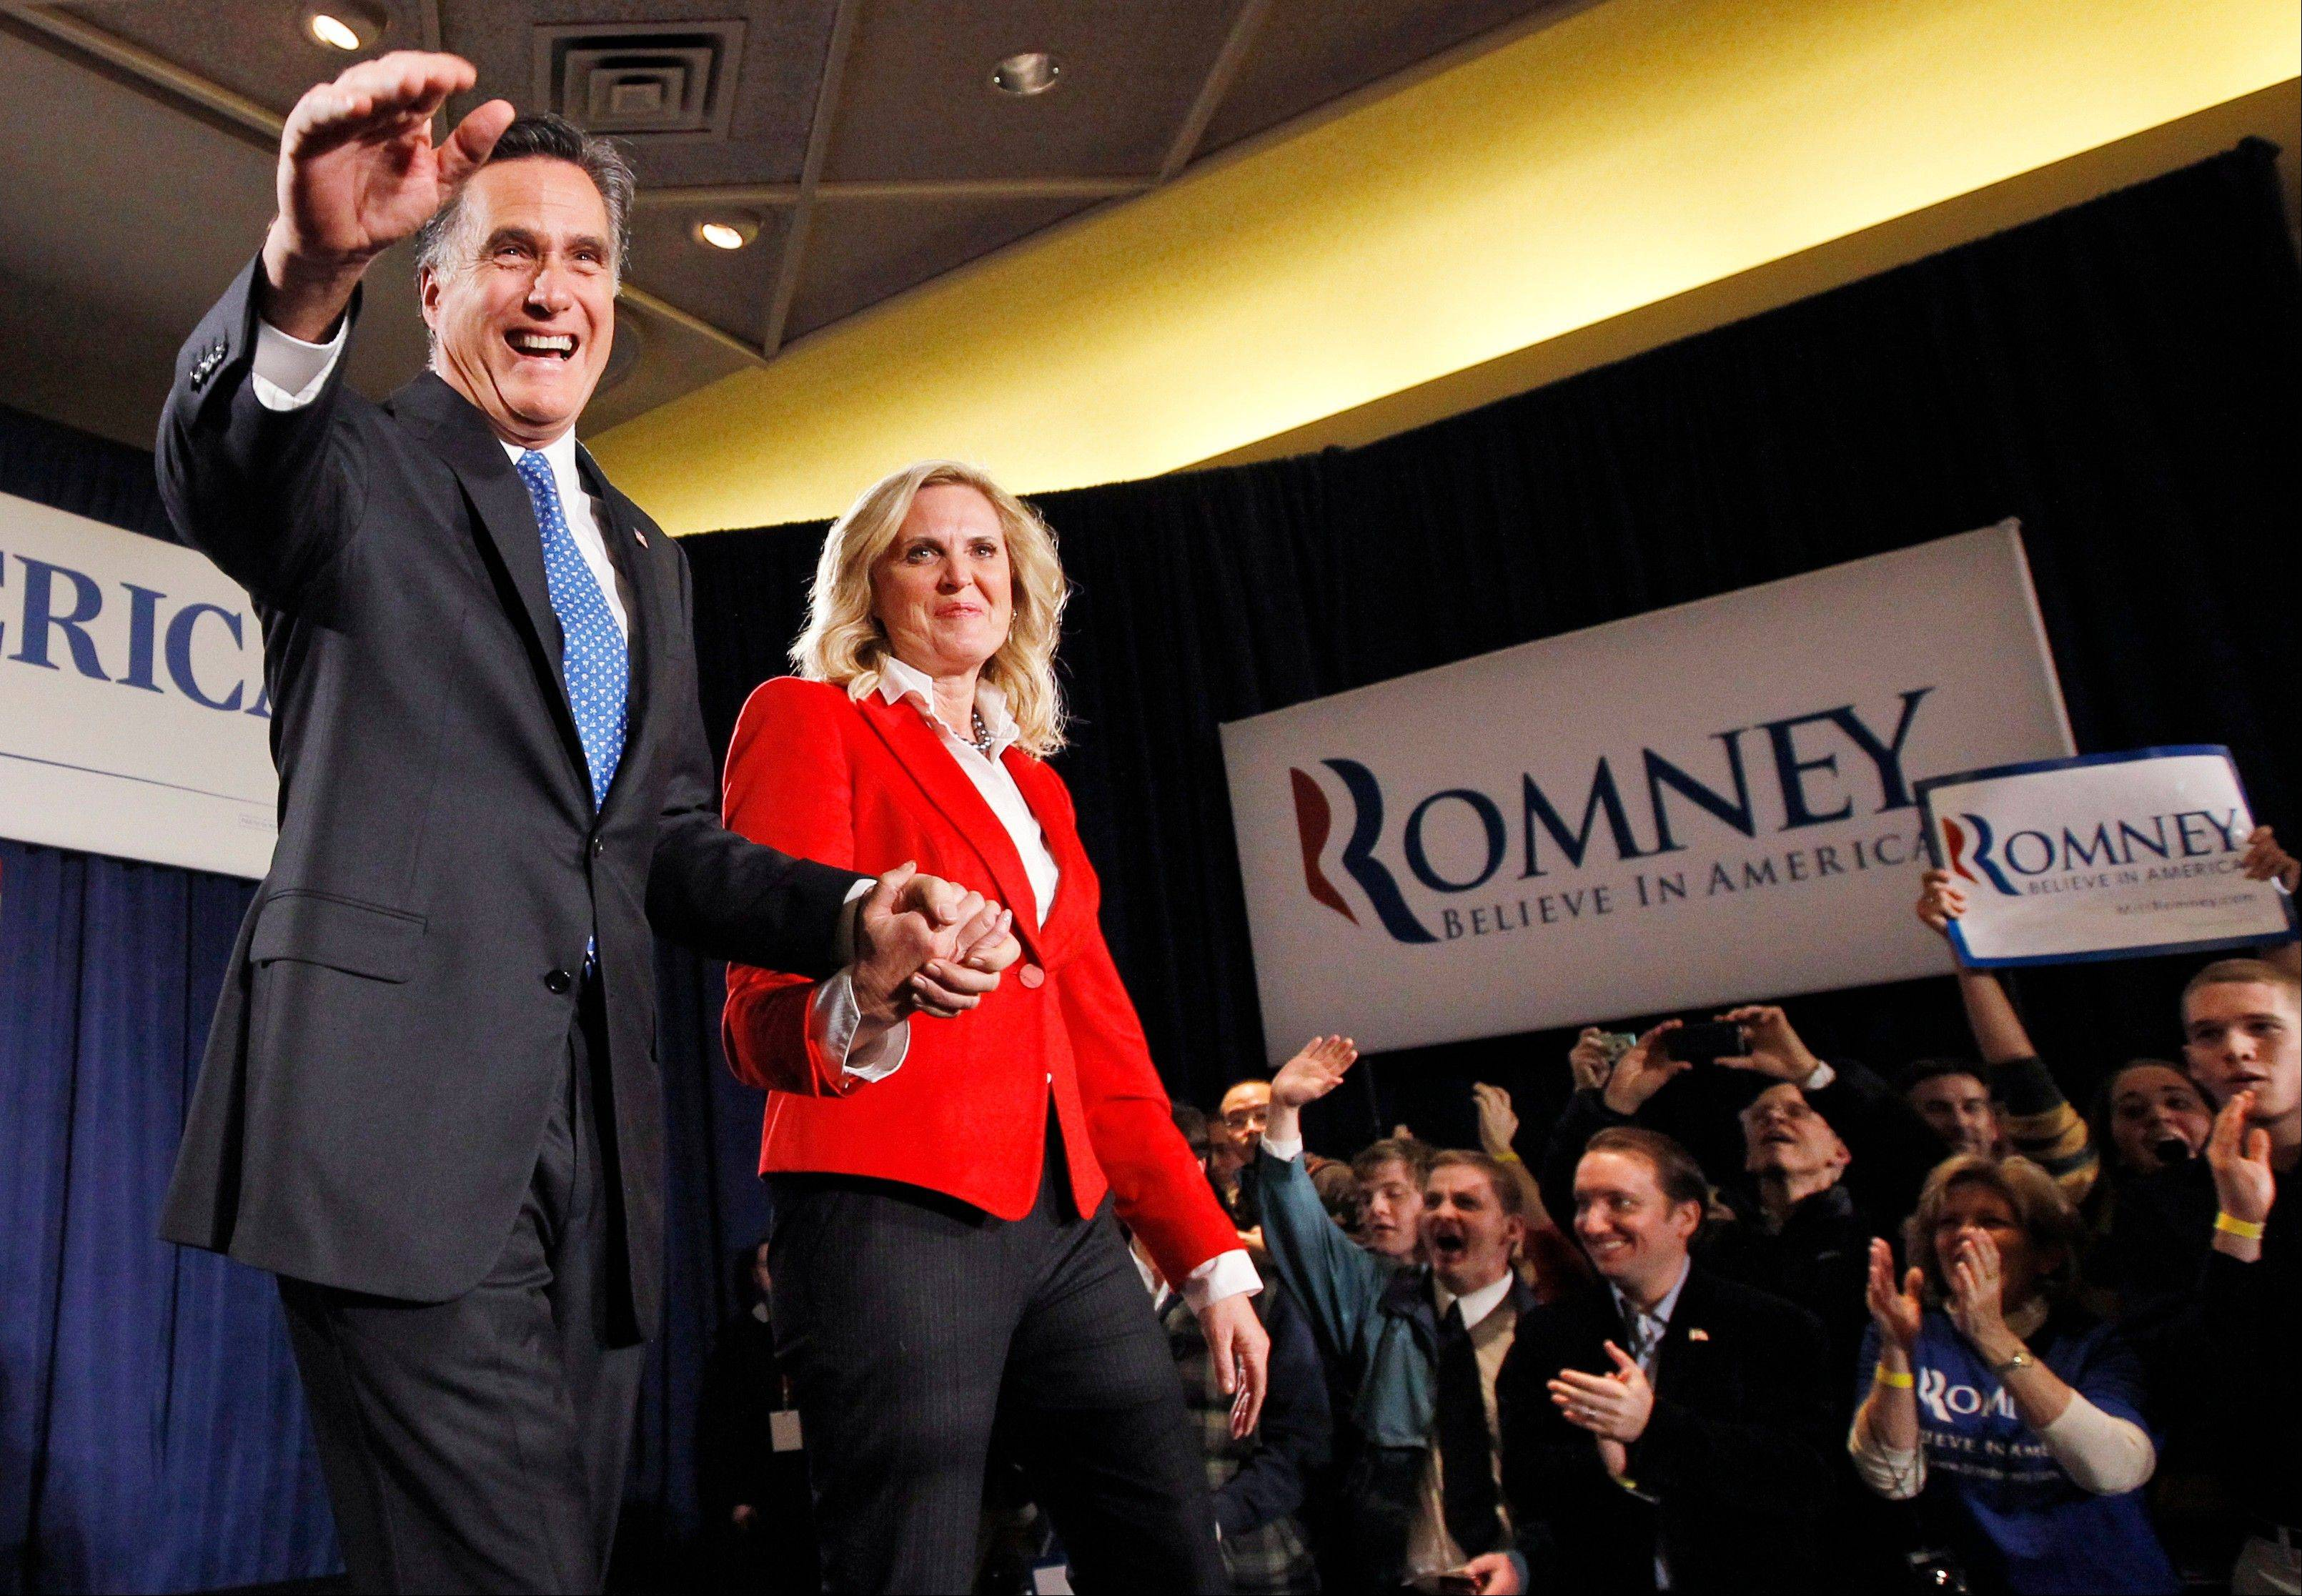 Victory in hand, Romney looks to New Hampshire